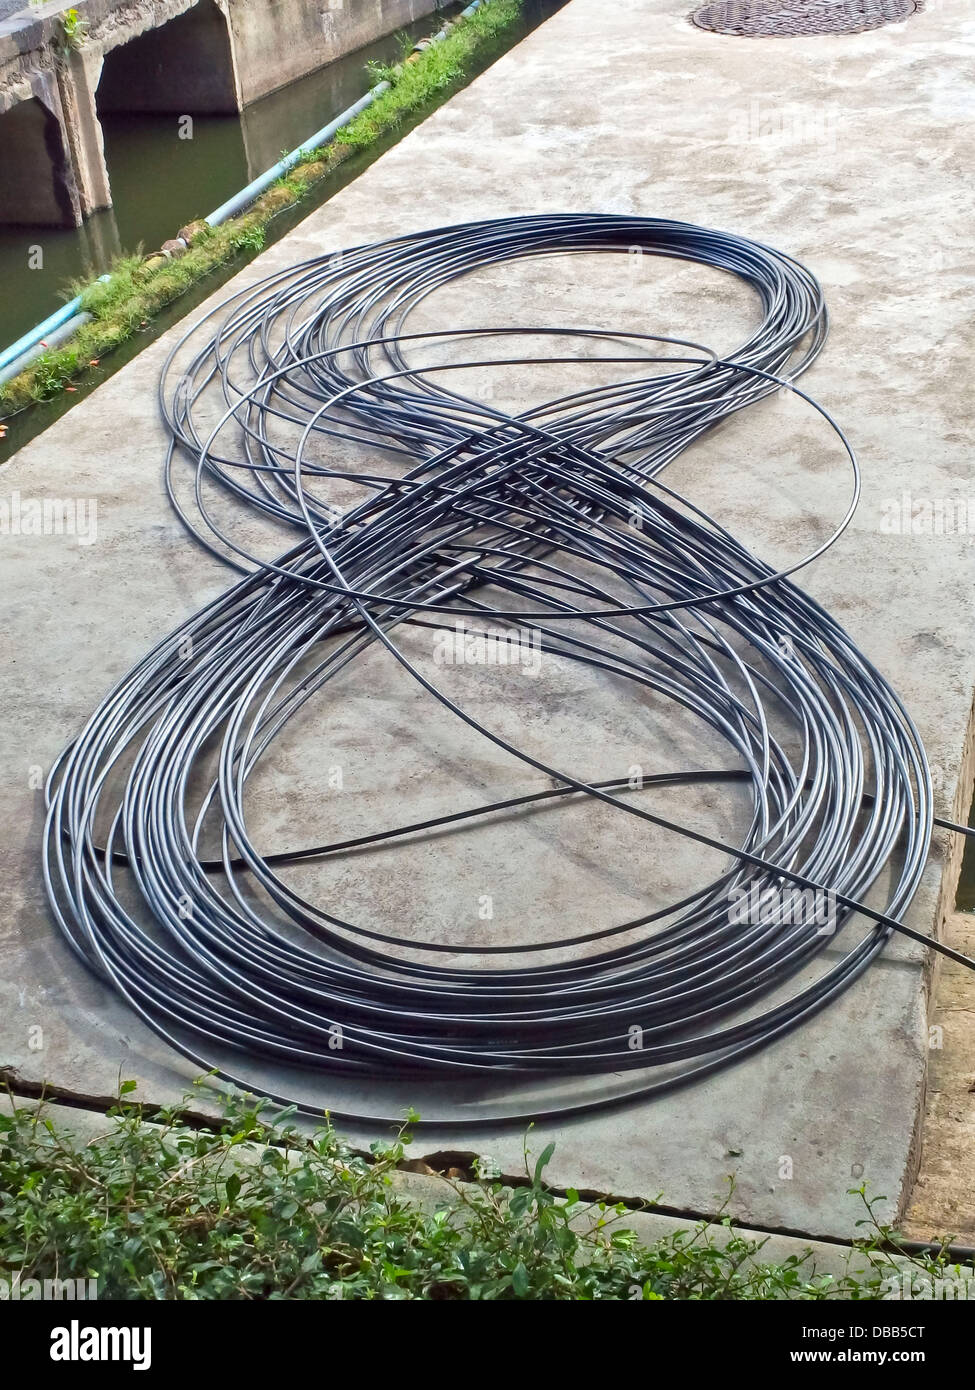 Wire Coil Electricity Stockfotos & Wire Coil Electricity Bilder - Alamy